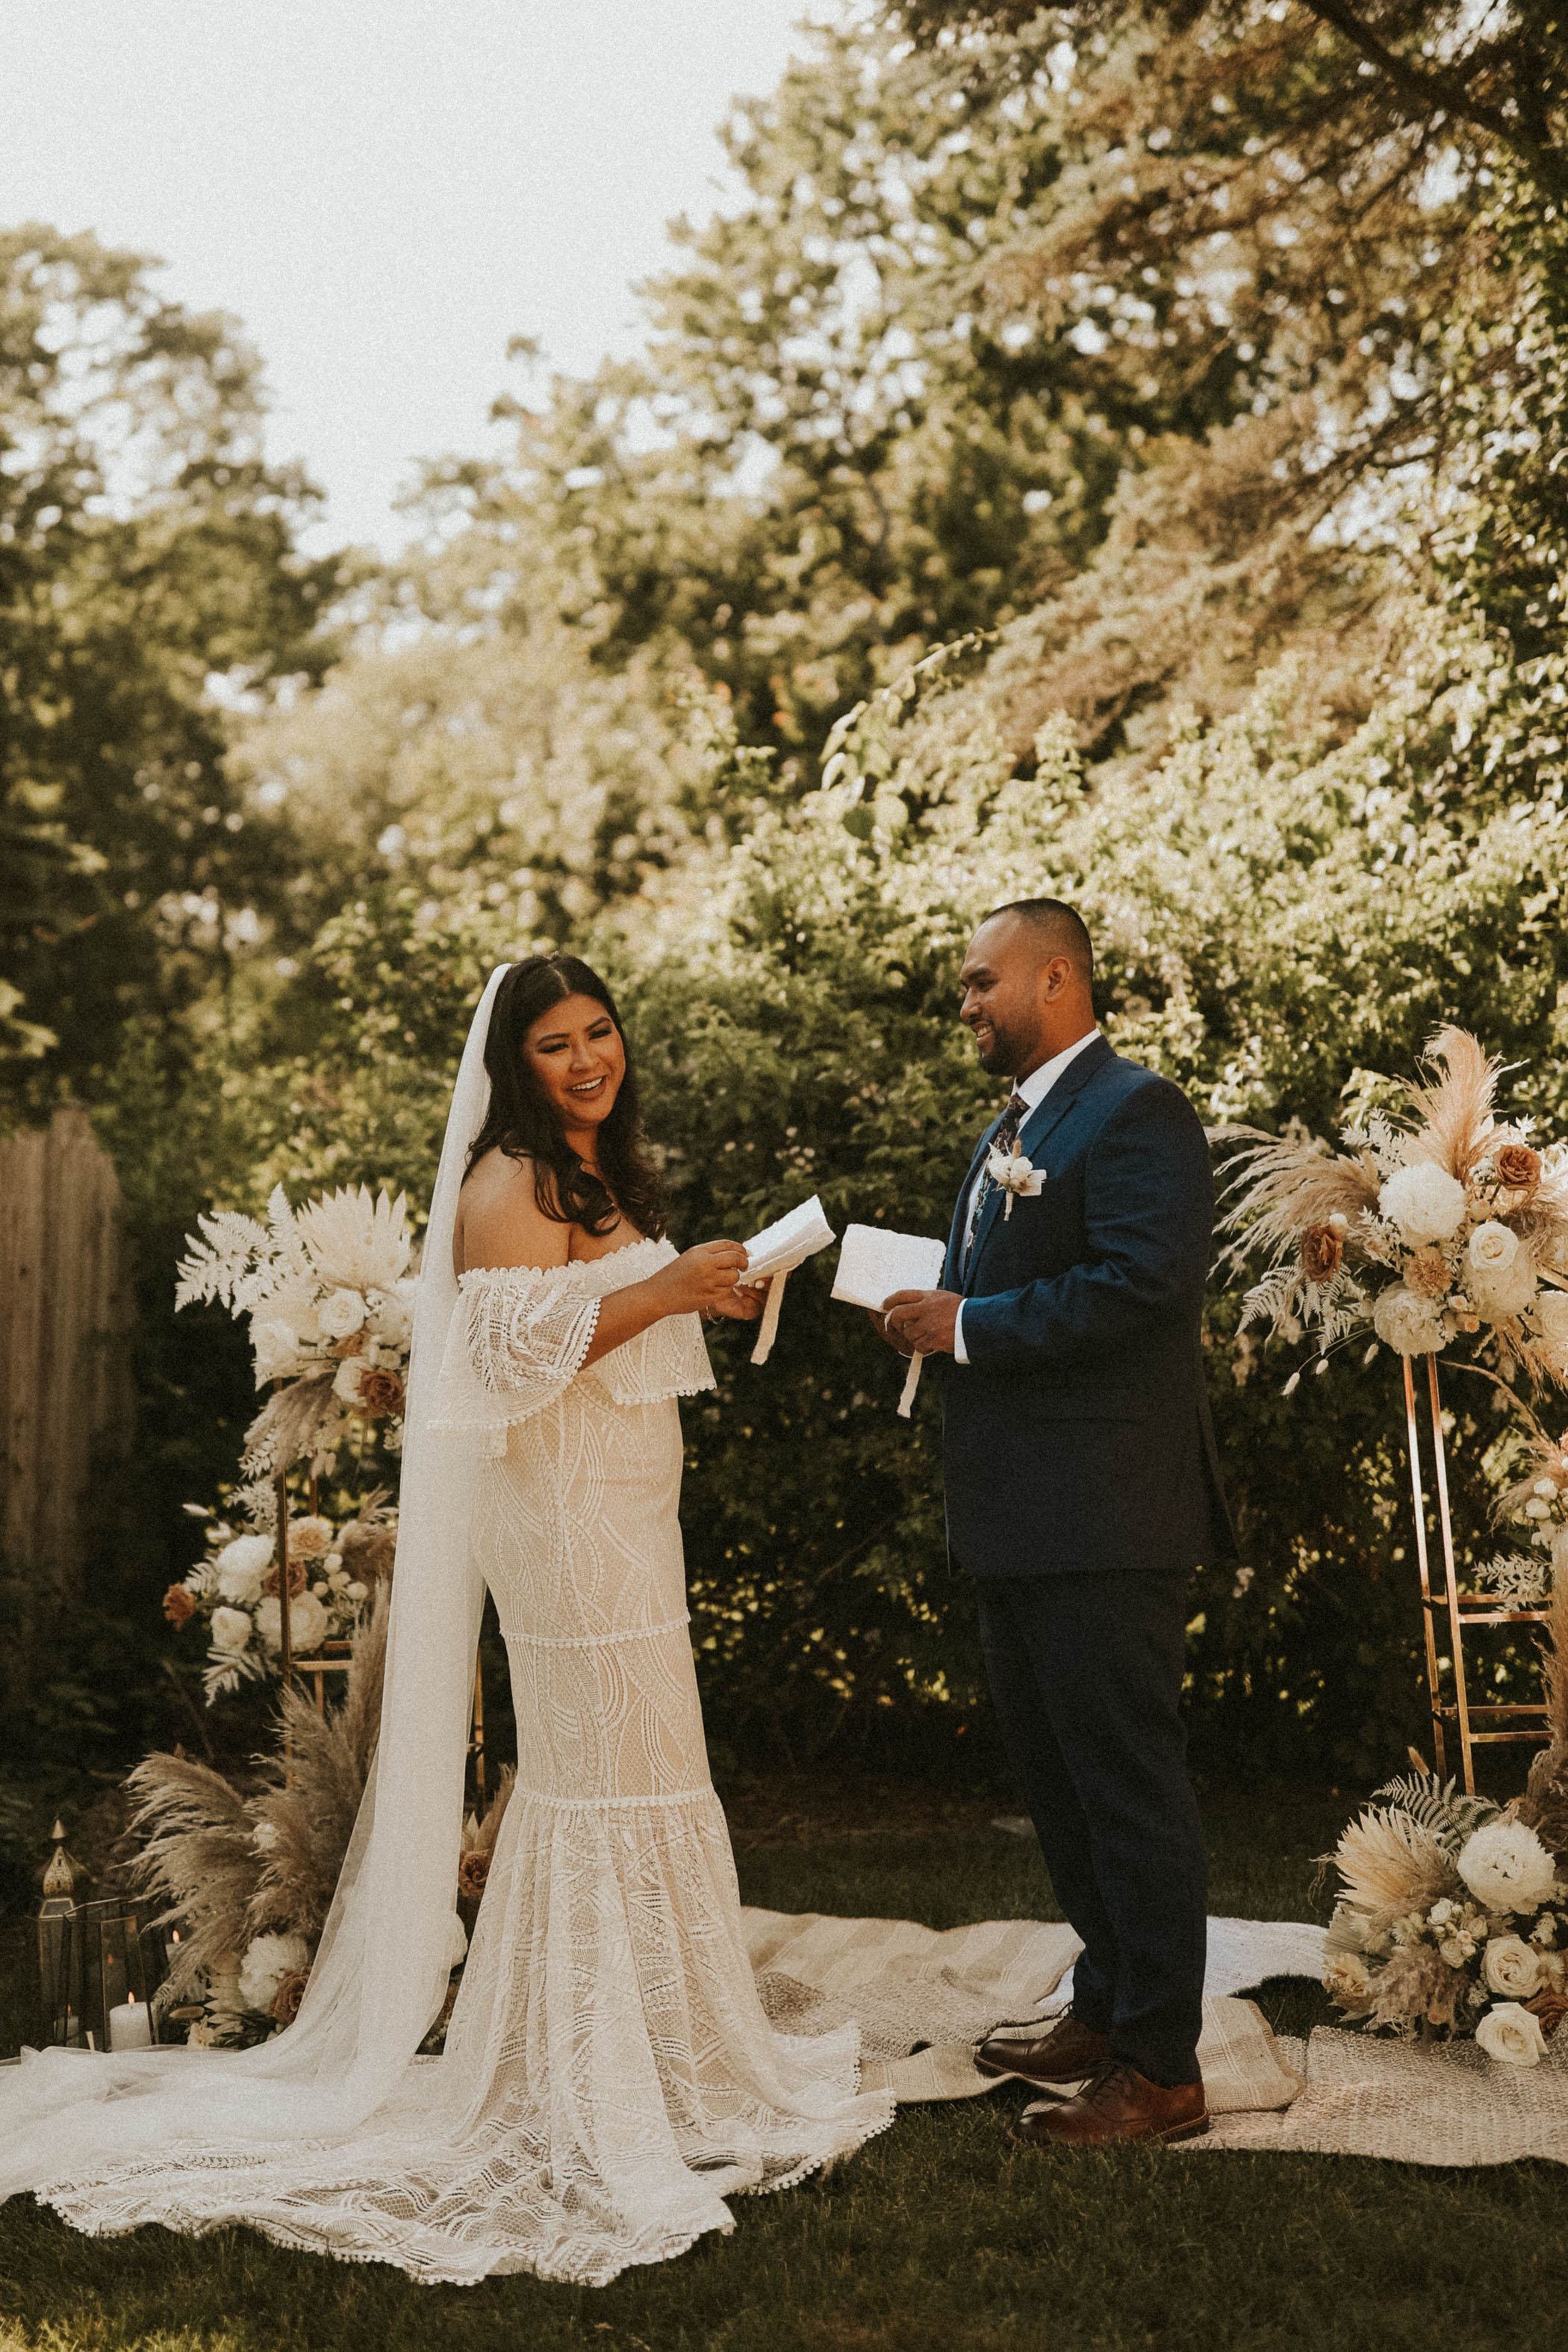 Husband and wife say their vows in their backyard boho wedding ceremony